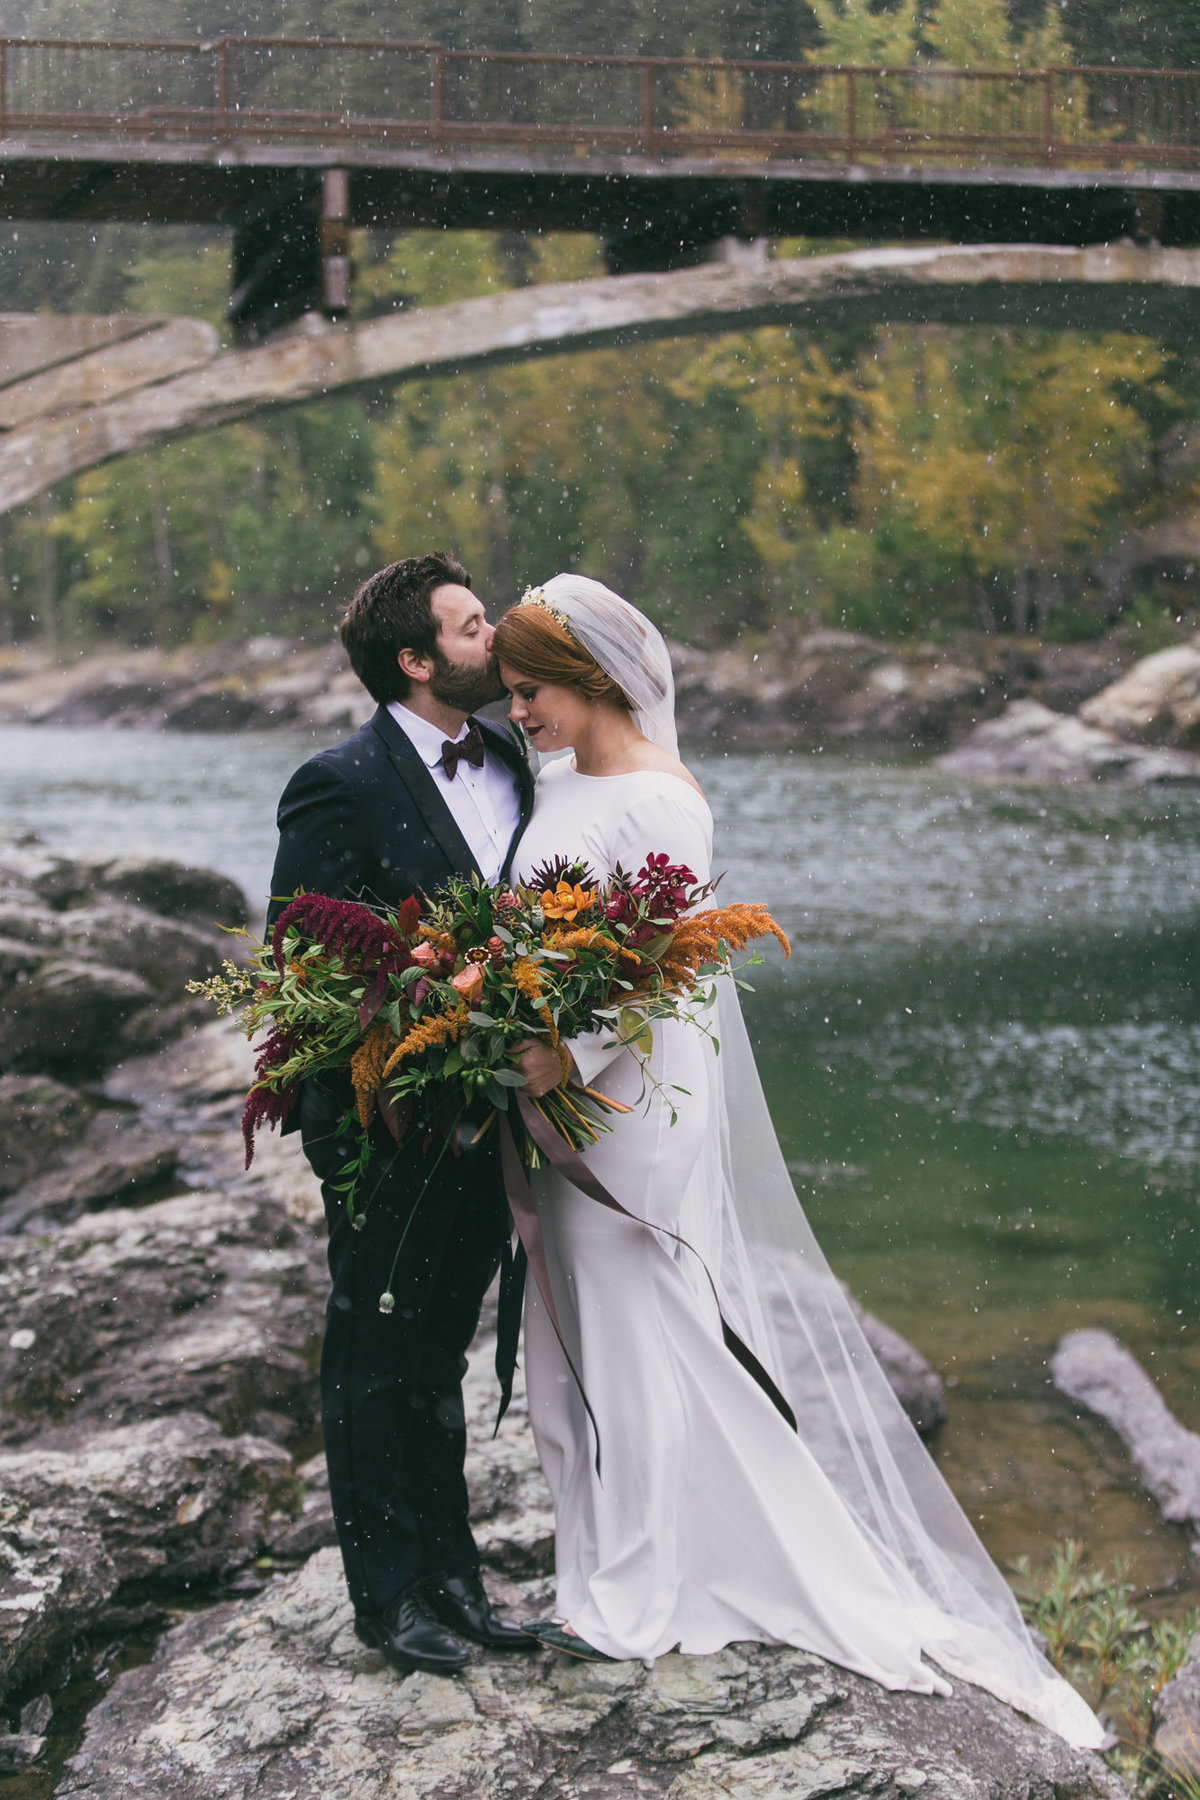 Jennifer_Mooney_Photography_Abbey_Stephen_Fall_Winter_Glacier_Park_Elopement-50